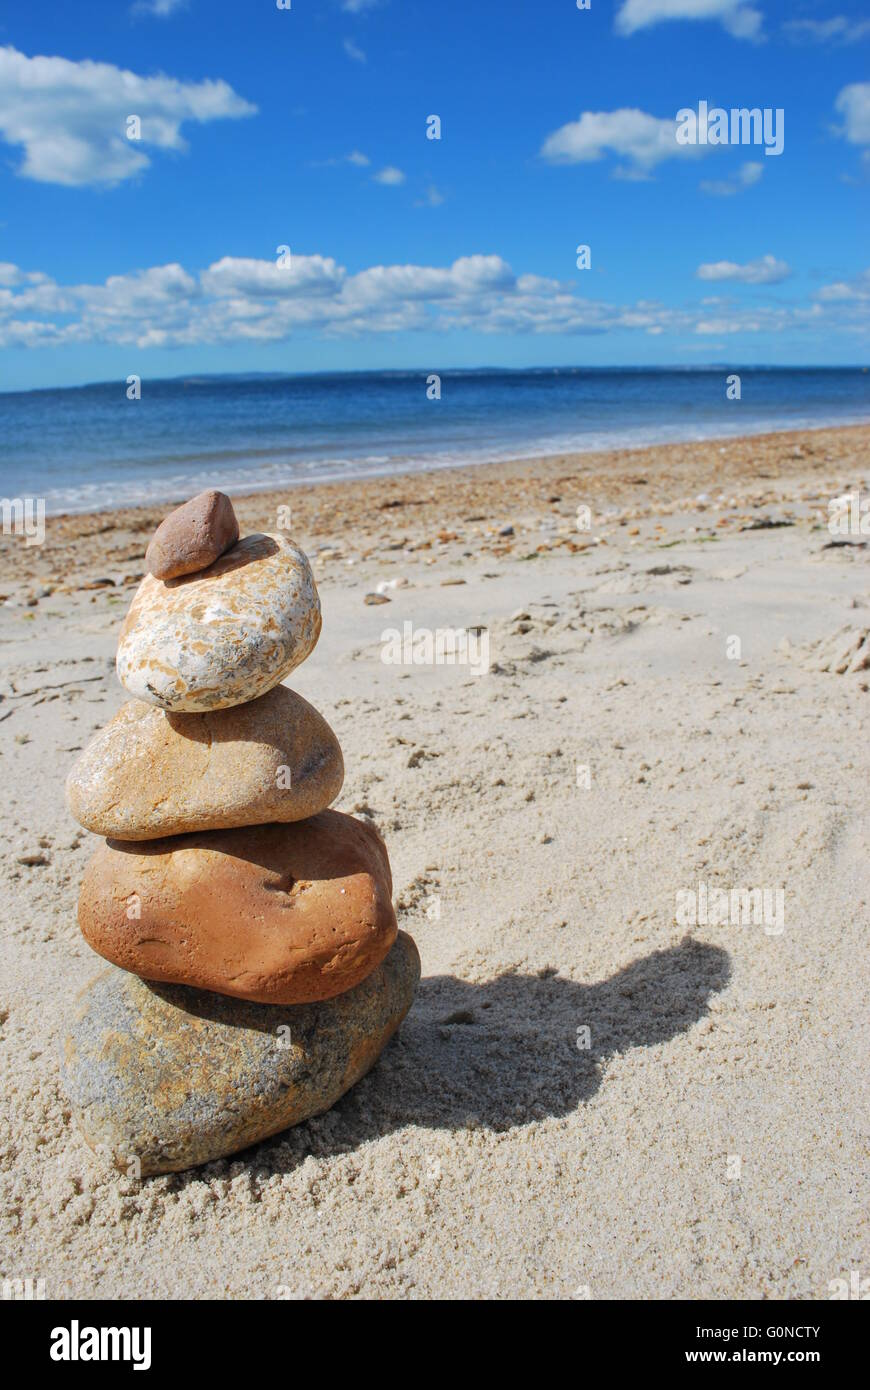 smooth zen like stones stacked in the sand on Bournemouth beach - Stock Image